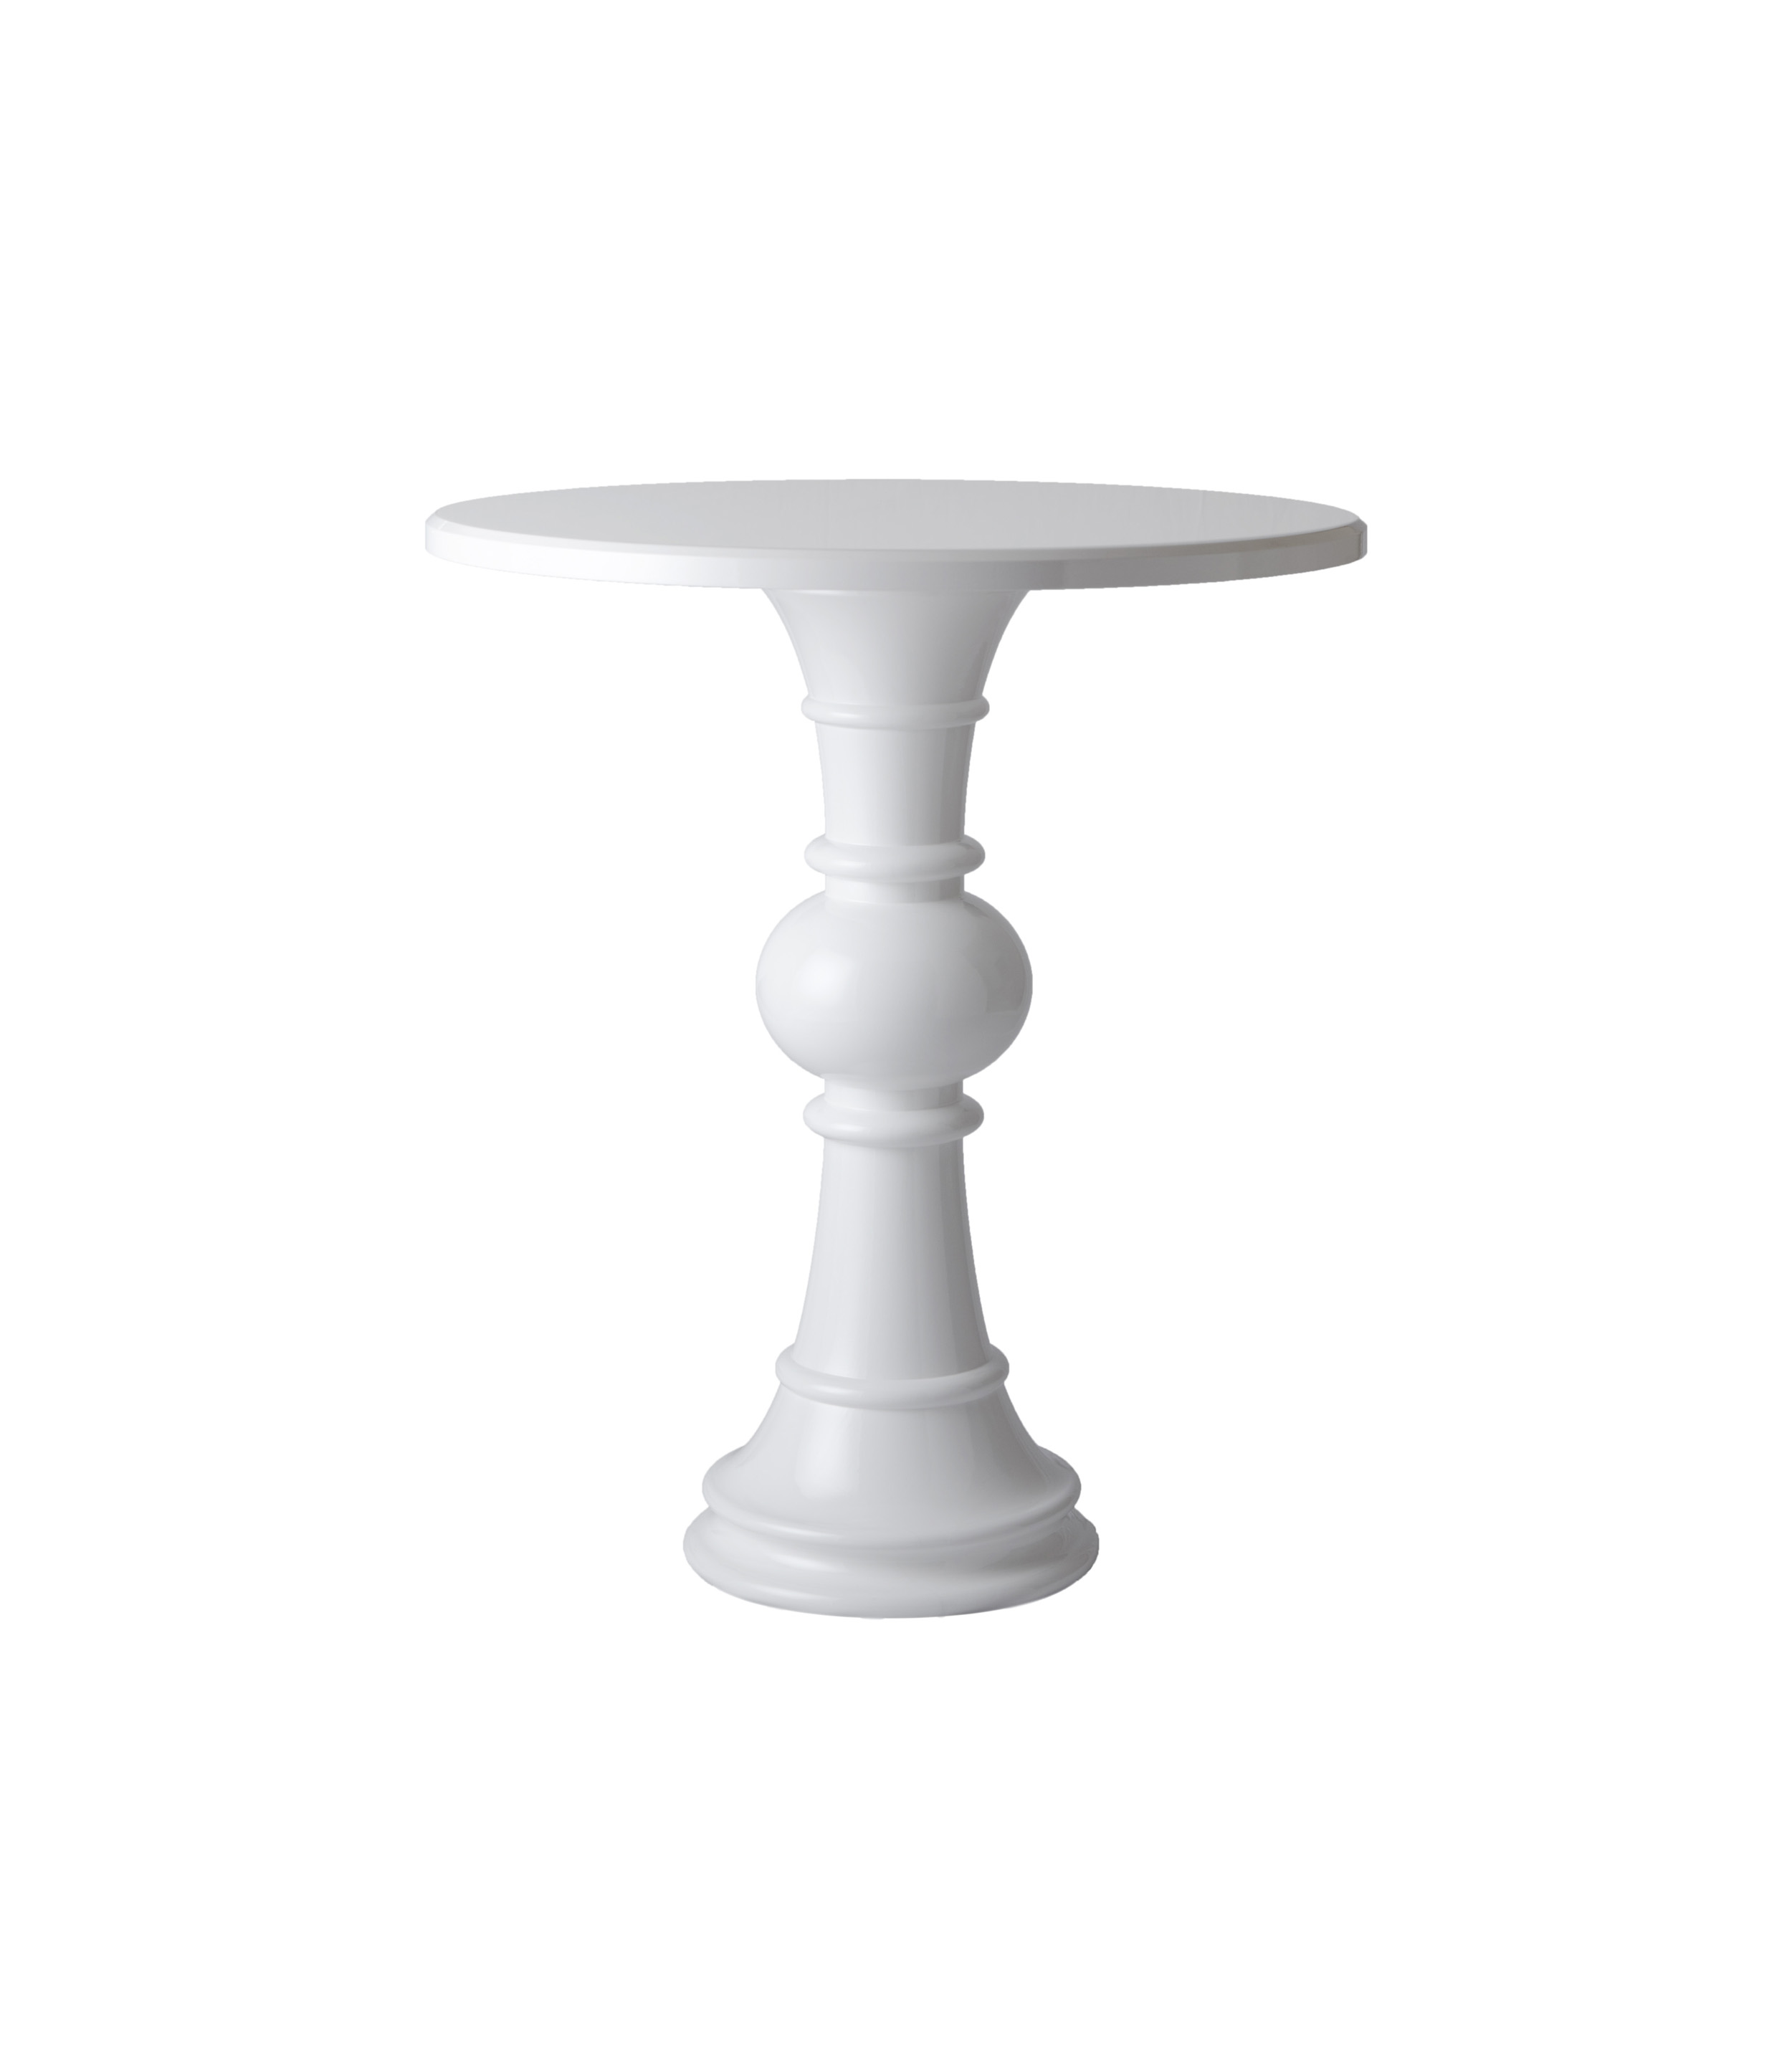 Onland Outdoor Furniture Dunes Duchess Captain S Compass Table